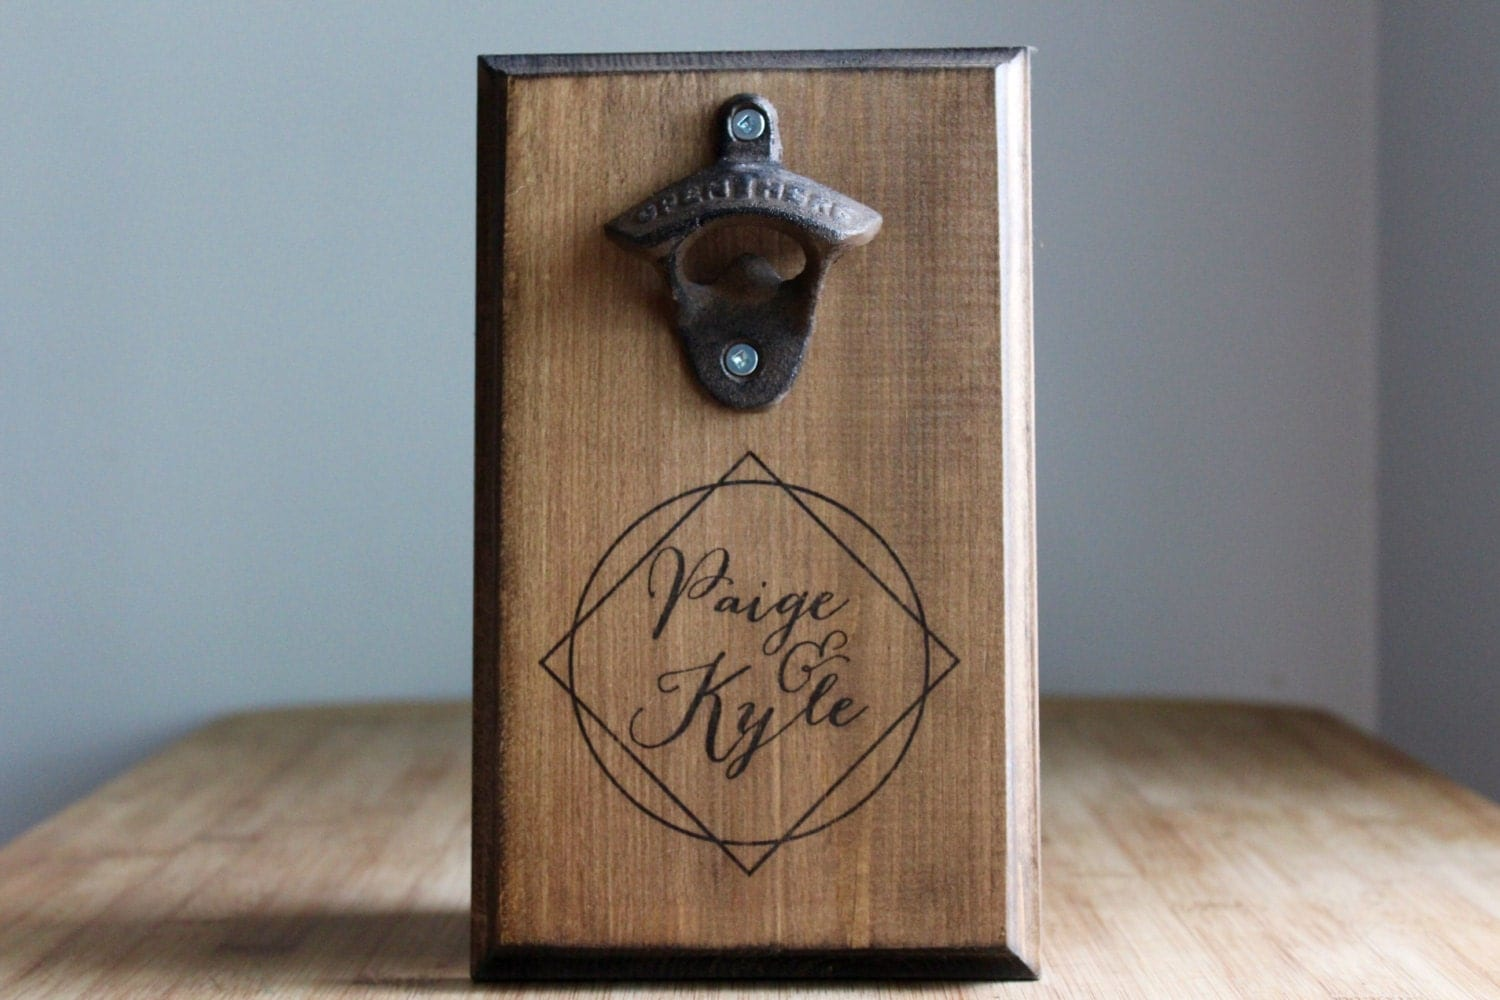 Personalized wall mount bottle opener rustic wedding - Personalized wall mount bottle opener ...